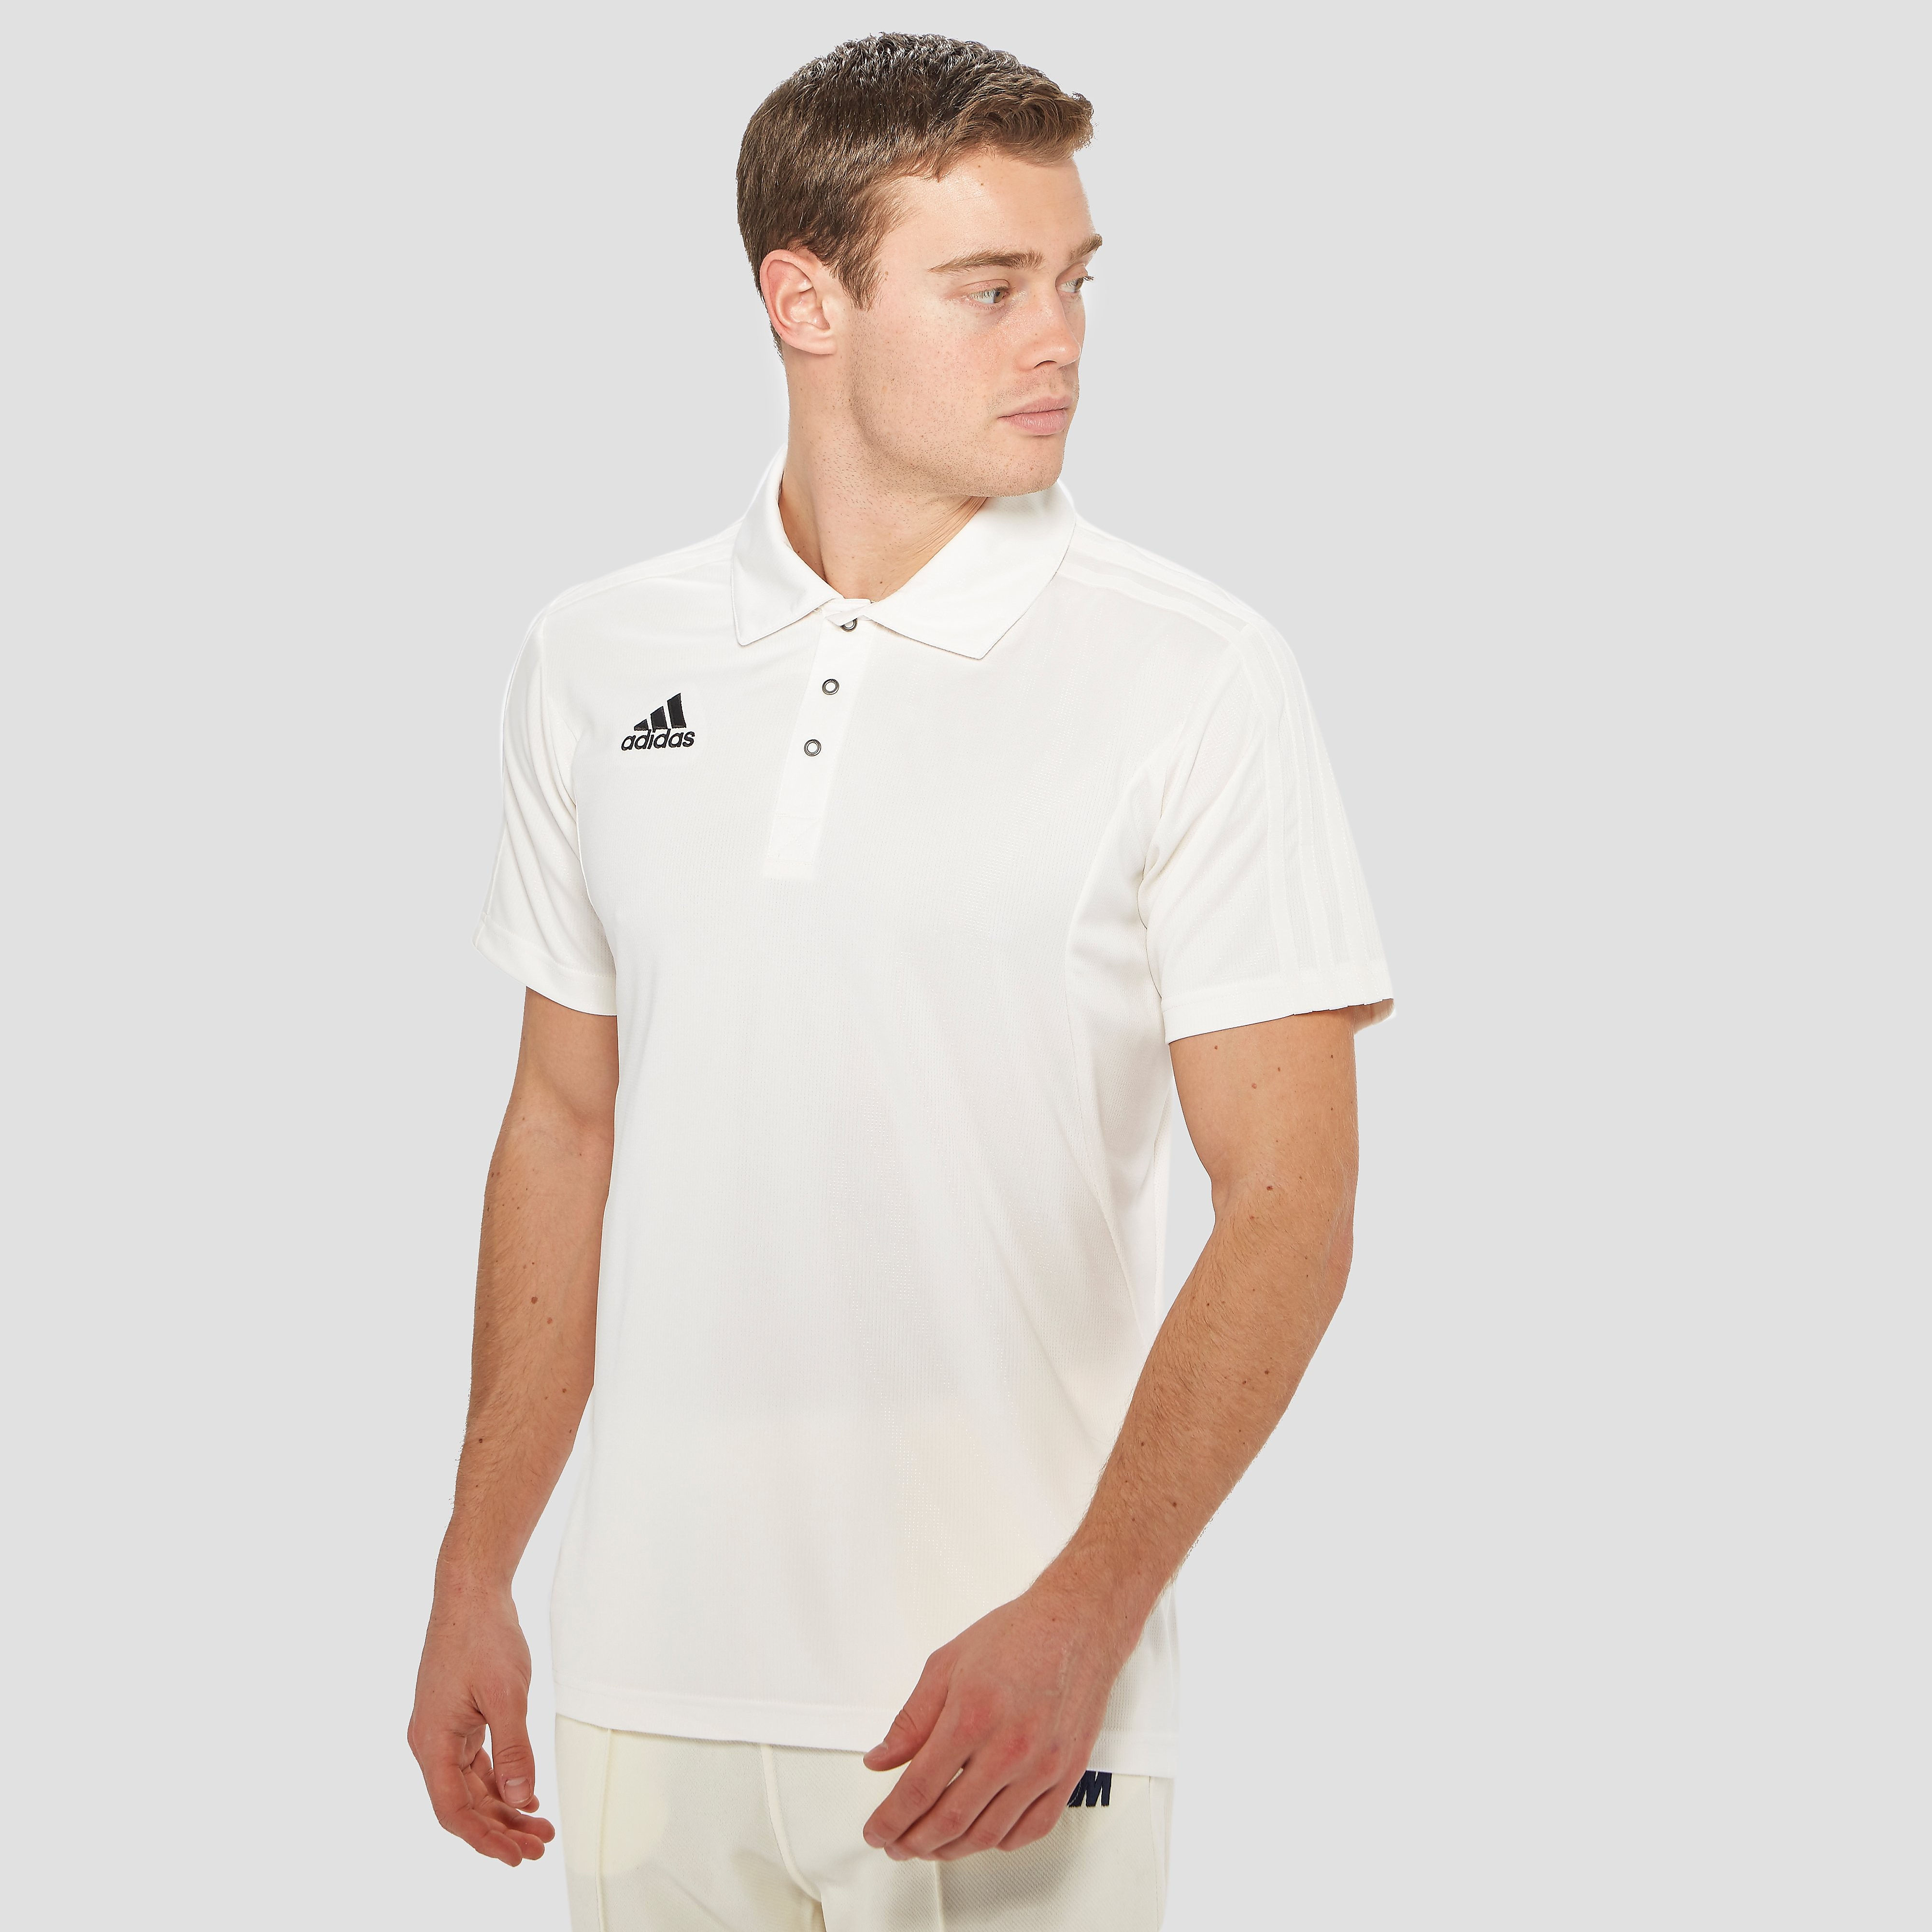 adidas Men's Cricket Shirt